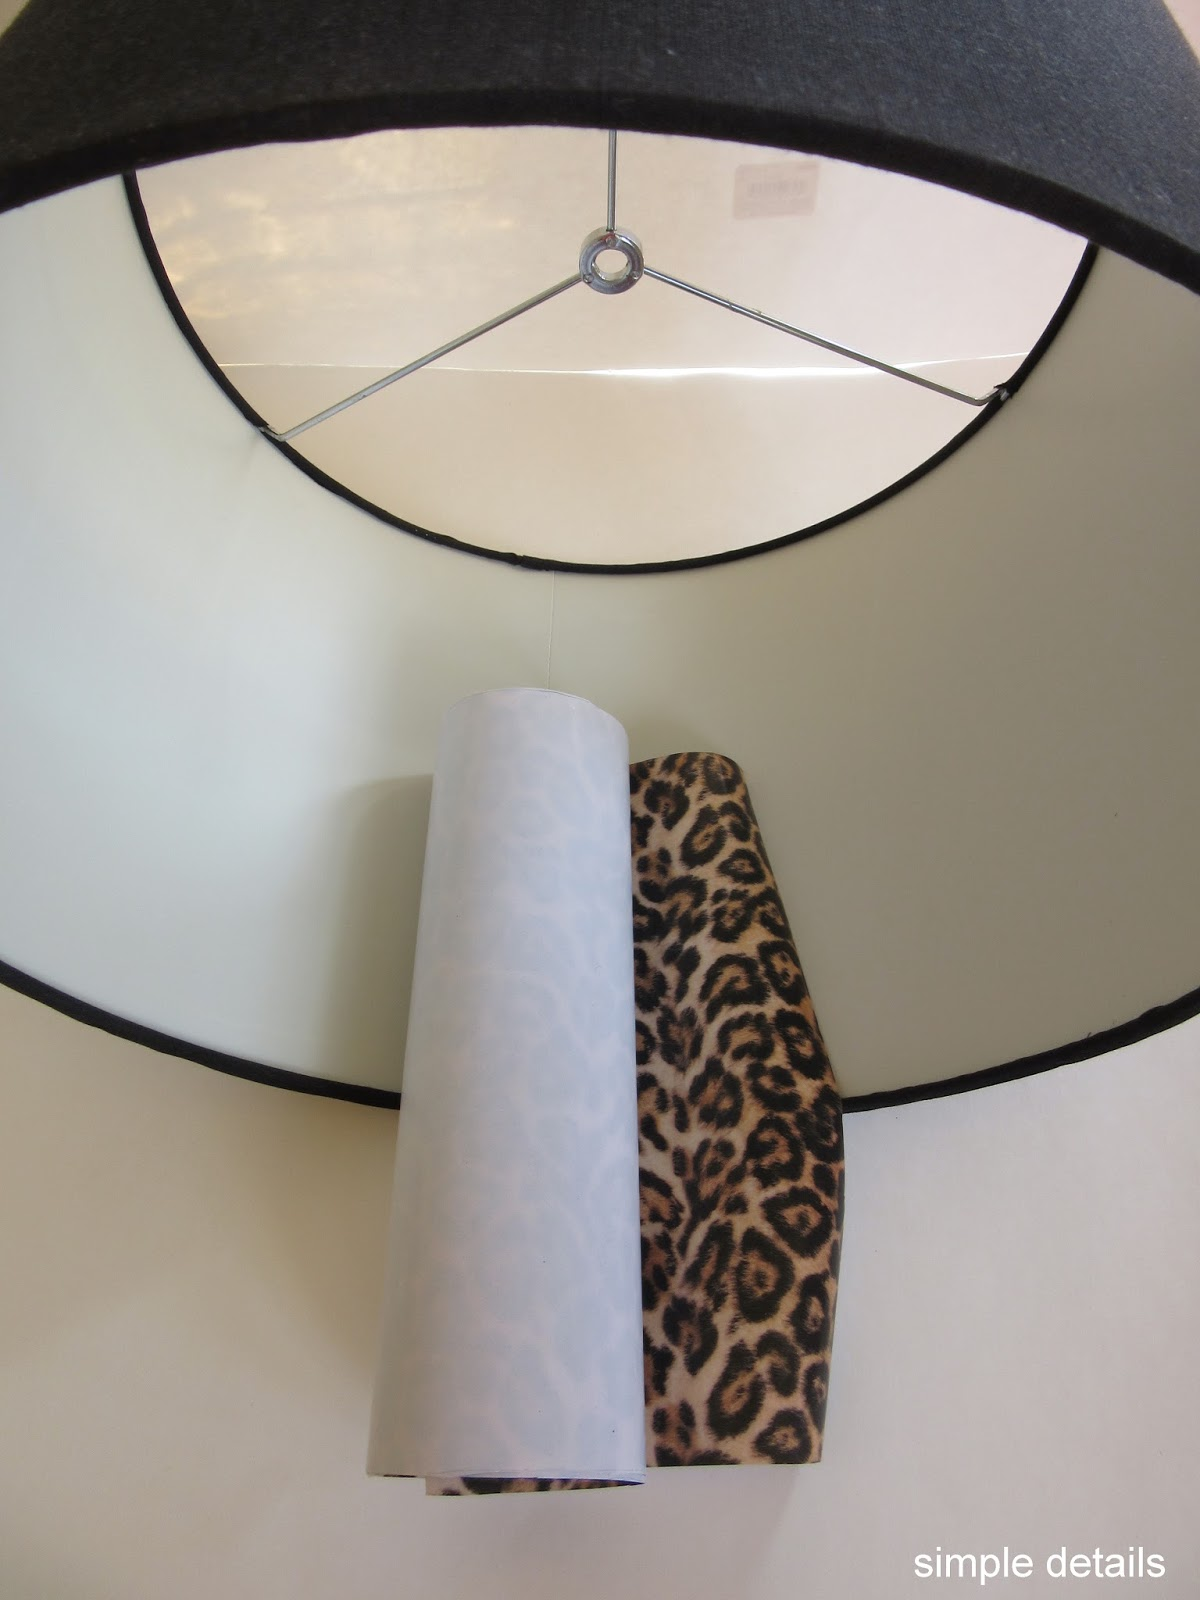 Simple Details: DIY Lamp Shade with Leopard Print Lining